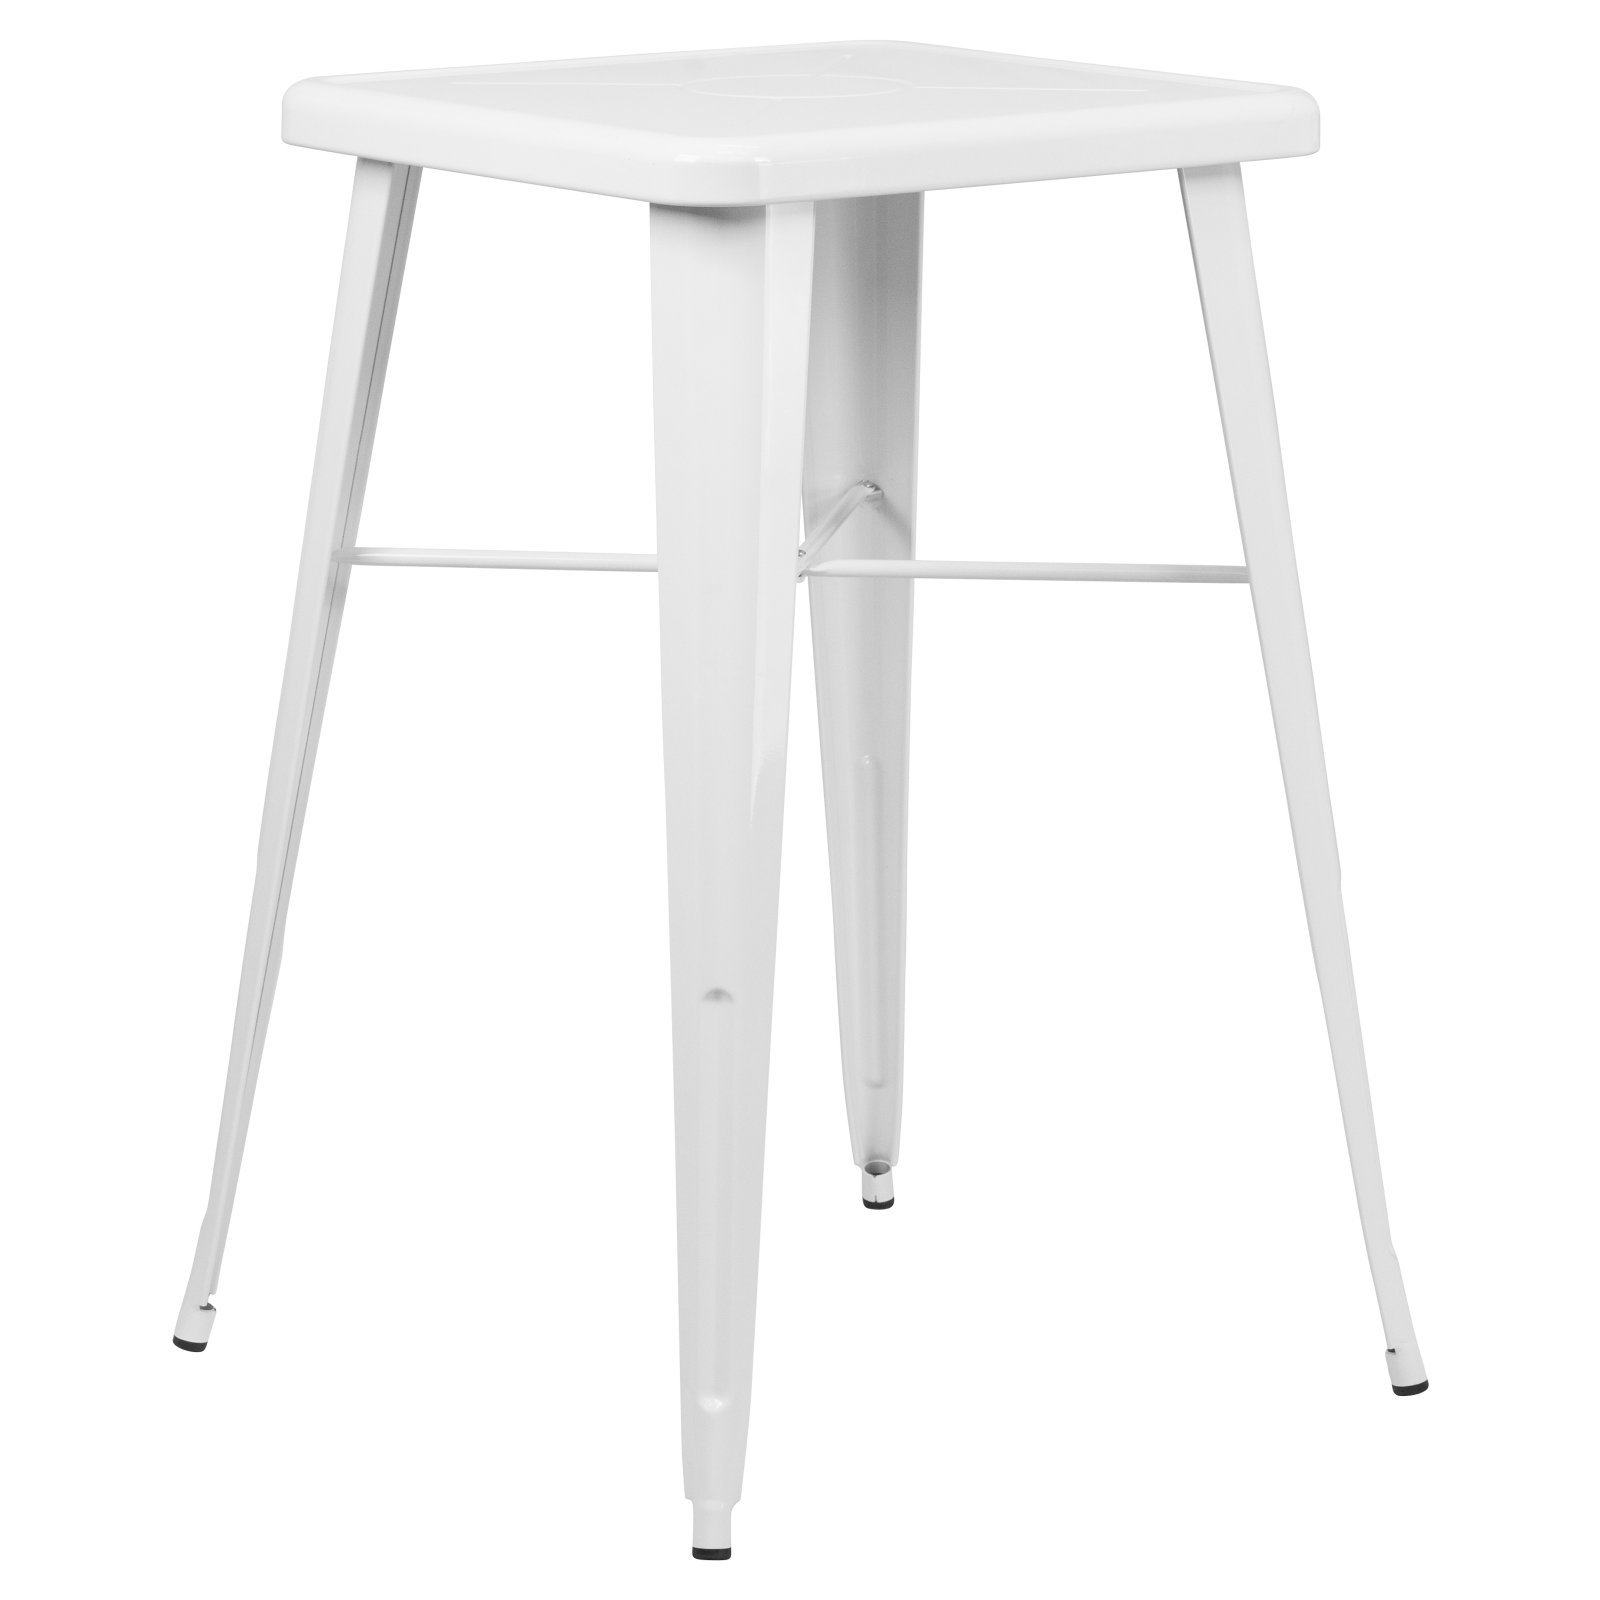 Basic 30'' Square Metal Indoor-Outdoor Bar Height Table with Protective Rubber Feet to Prevent Damage to Floors, Great for All Weather and Outdoor/Indoor Use, White + Expert Home Guide by Love US